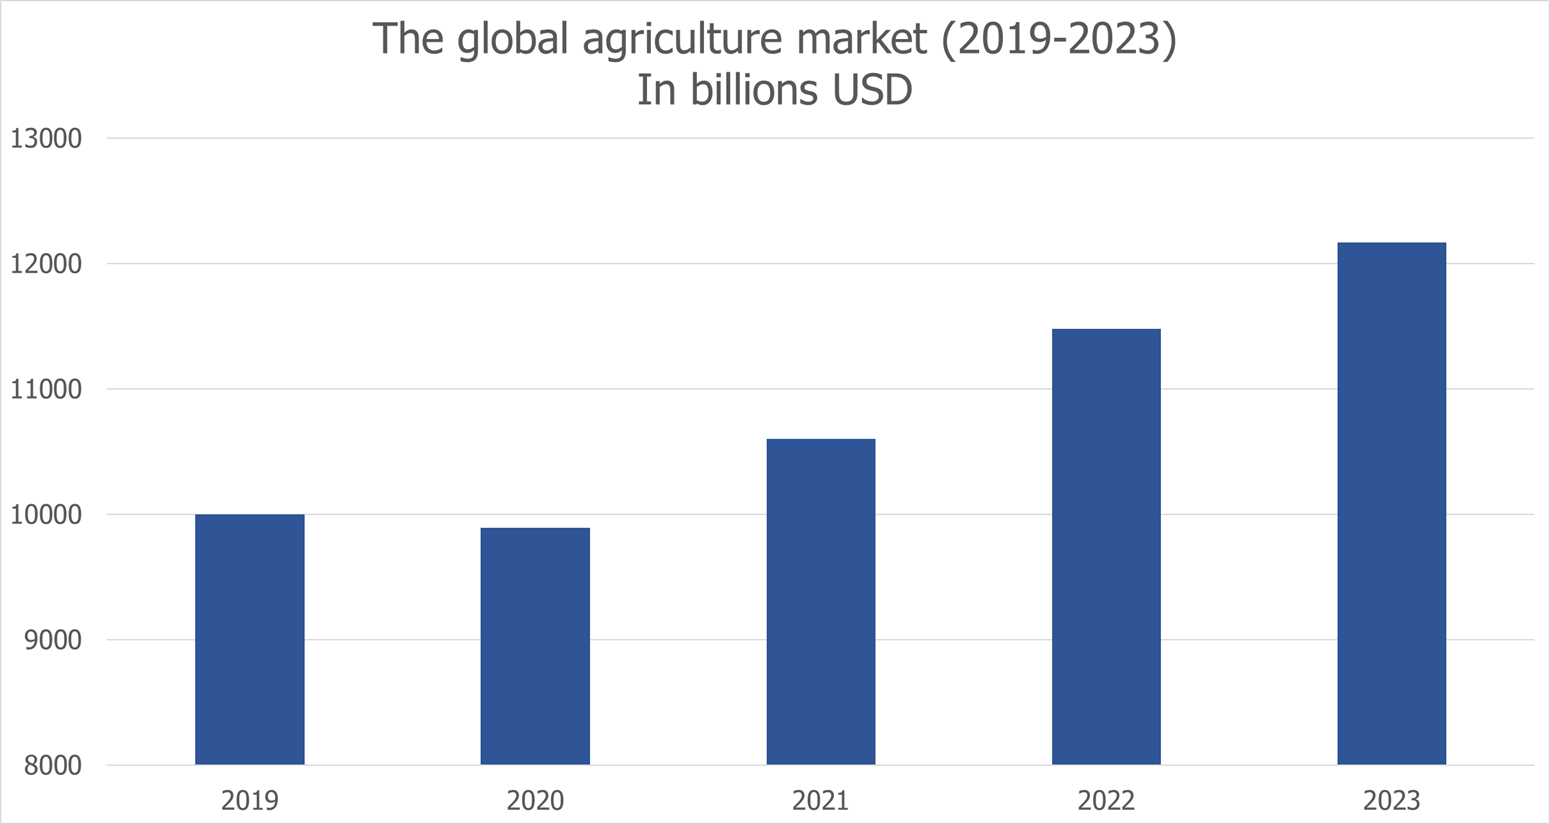 The global agriculture market (2019-2023)